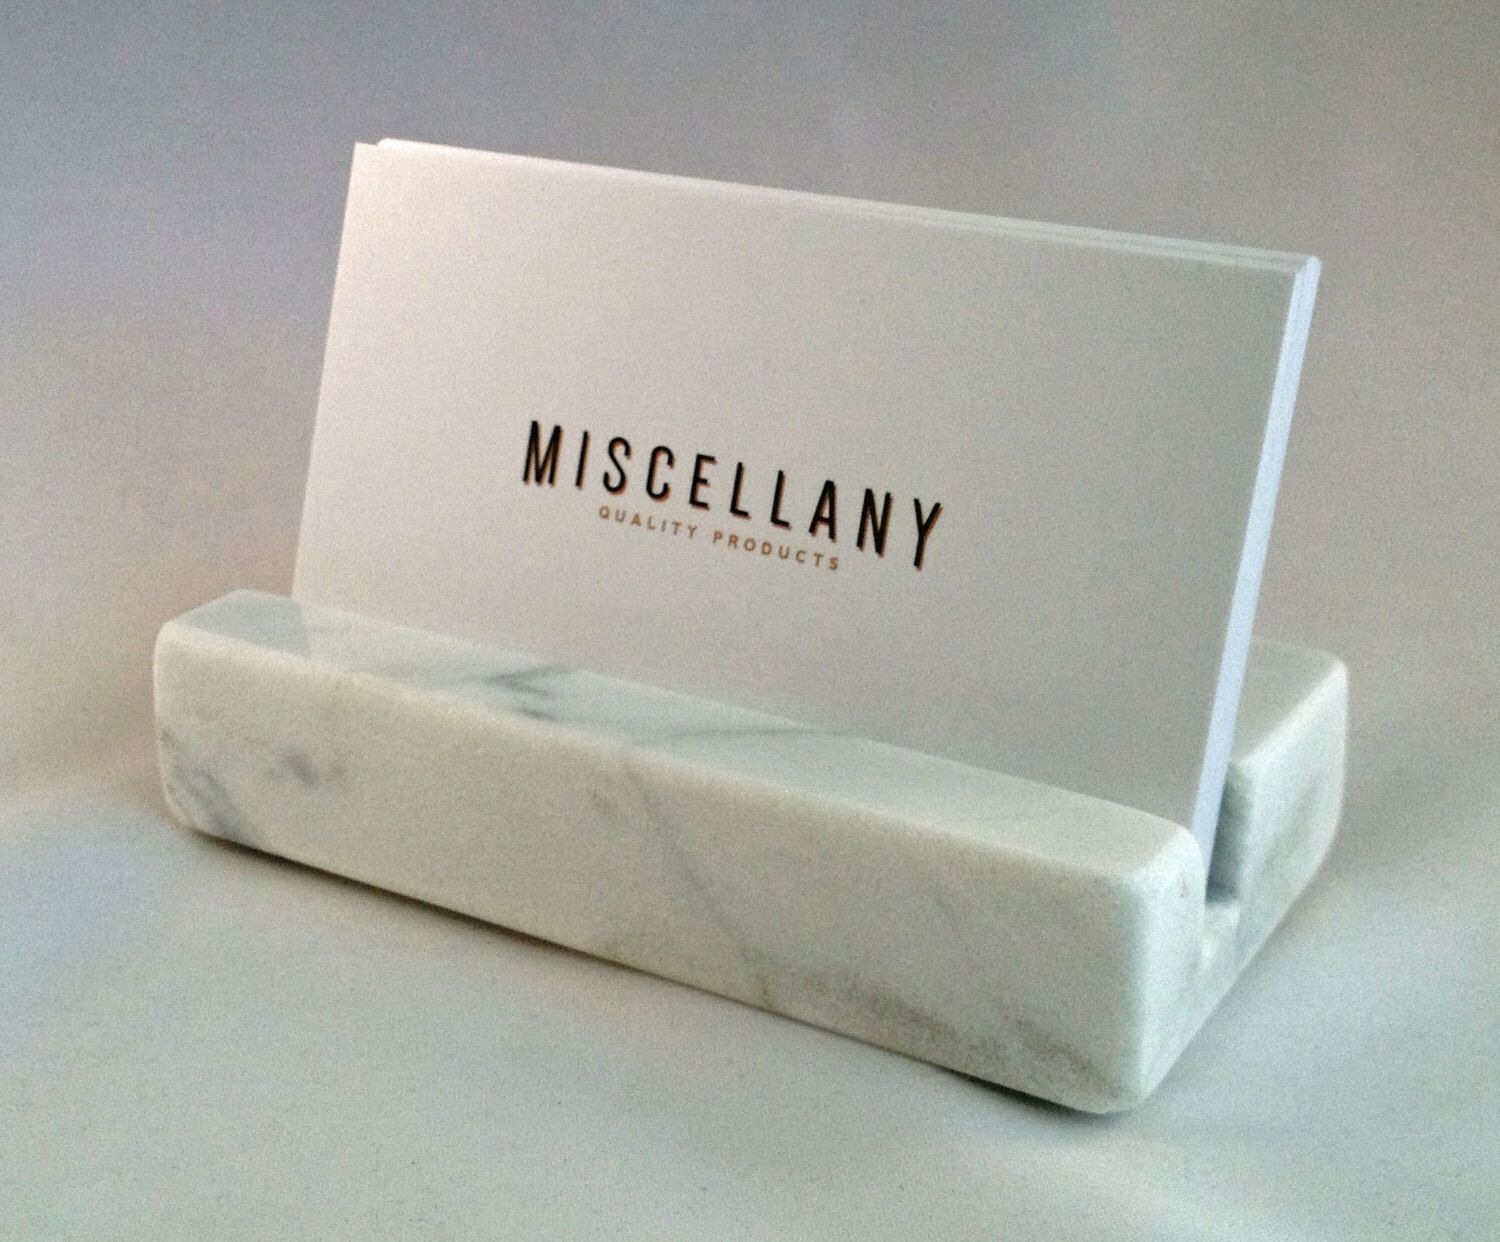 Business card holder white carrara marble office desk home business card holder white carrara marble office desk home recycled marble business gift by miscellanyonline on etsy colourmoves